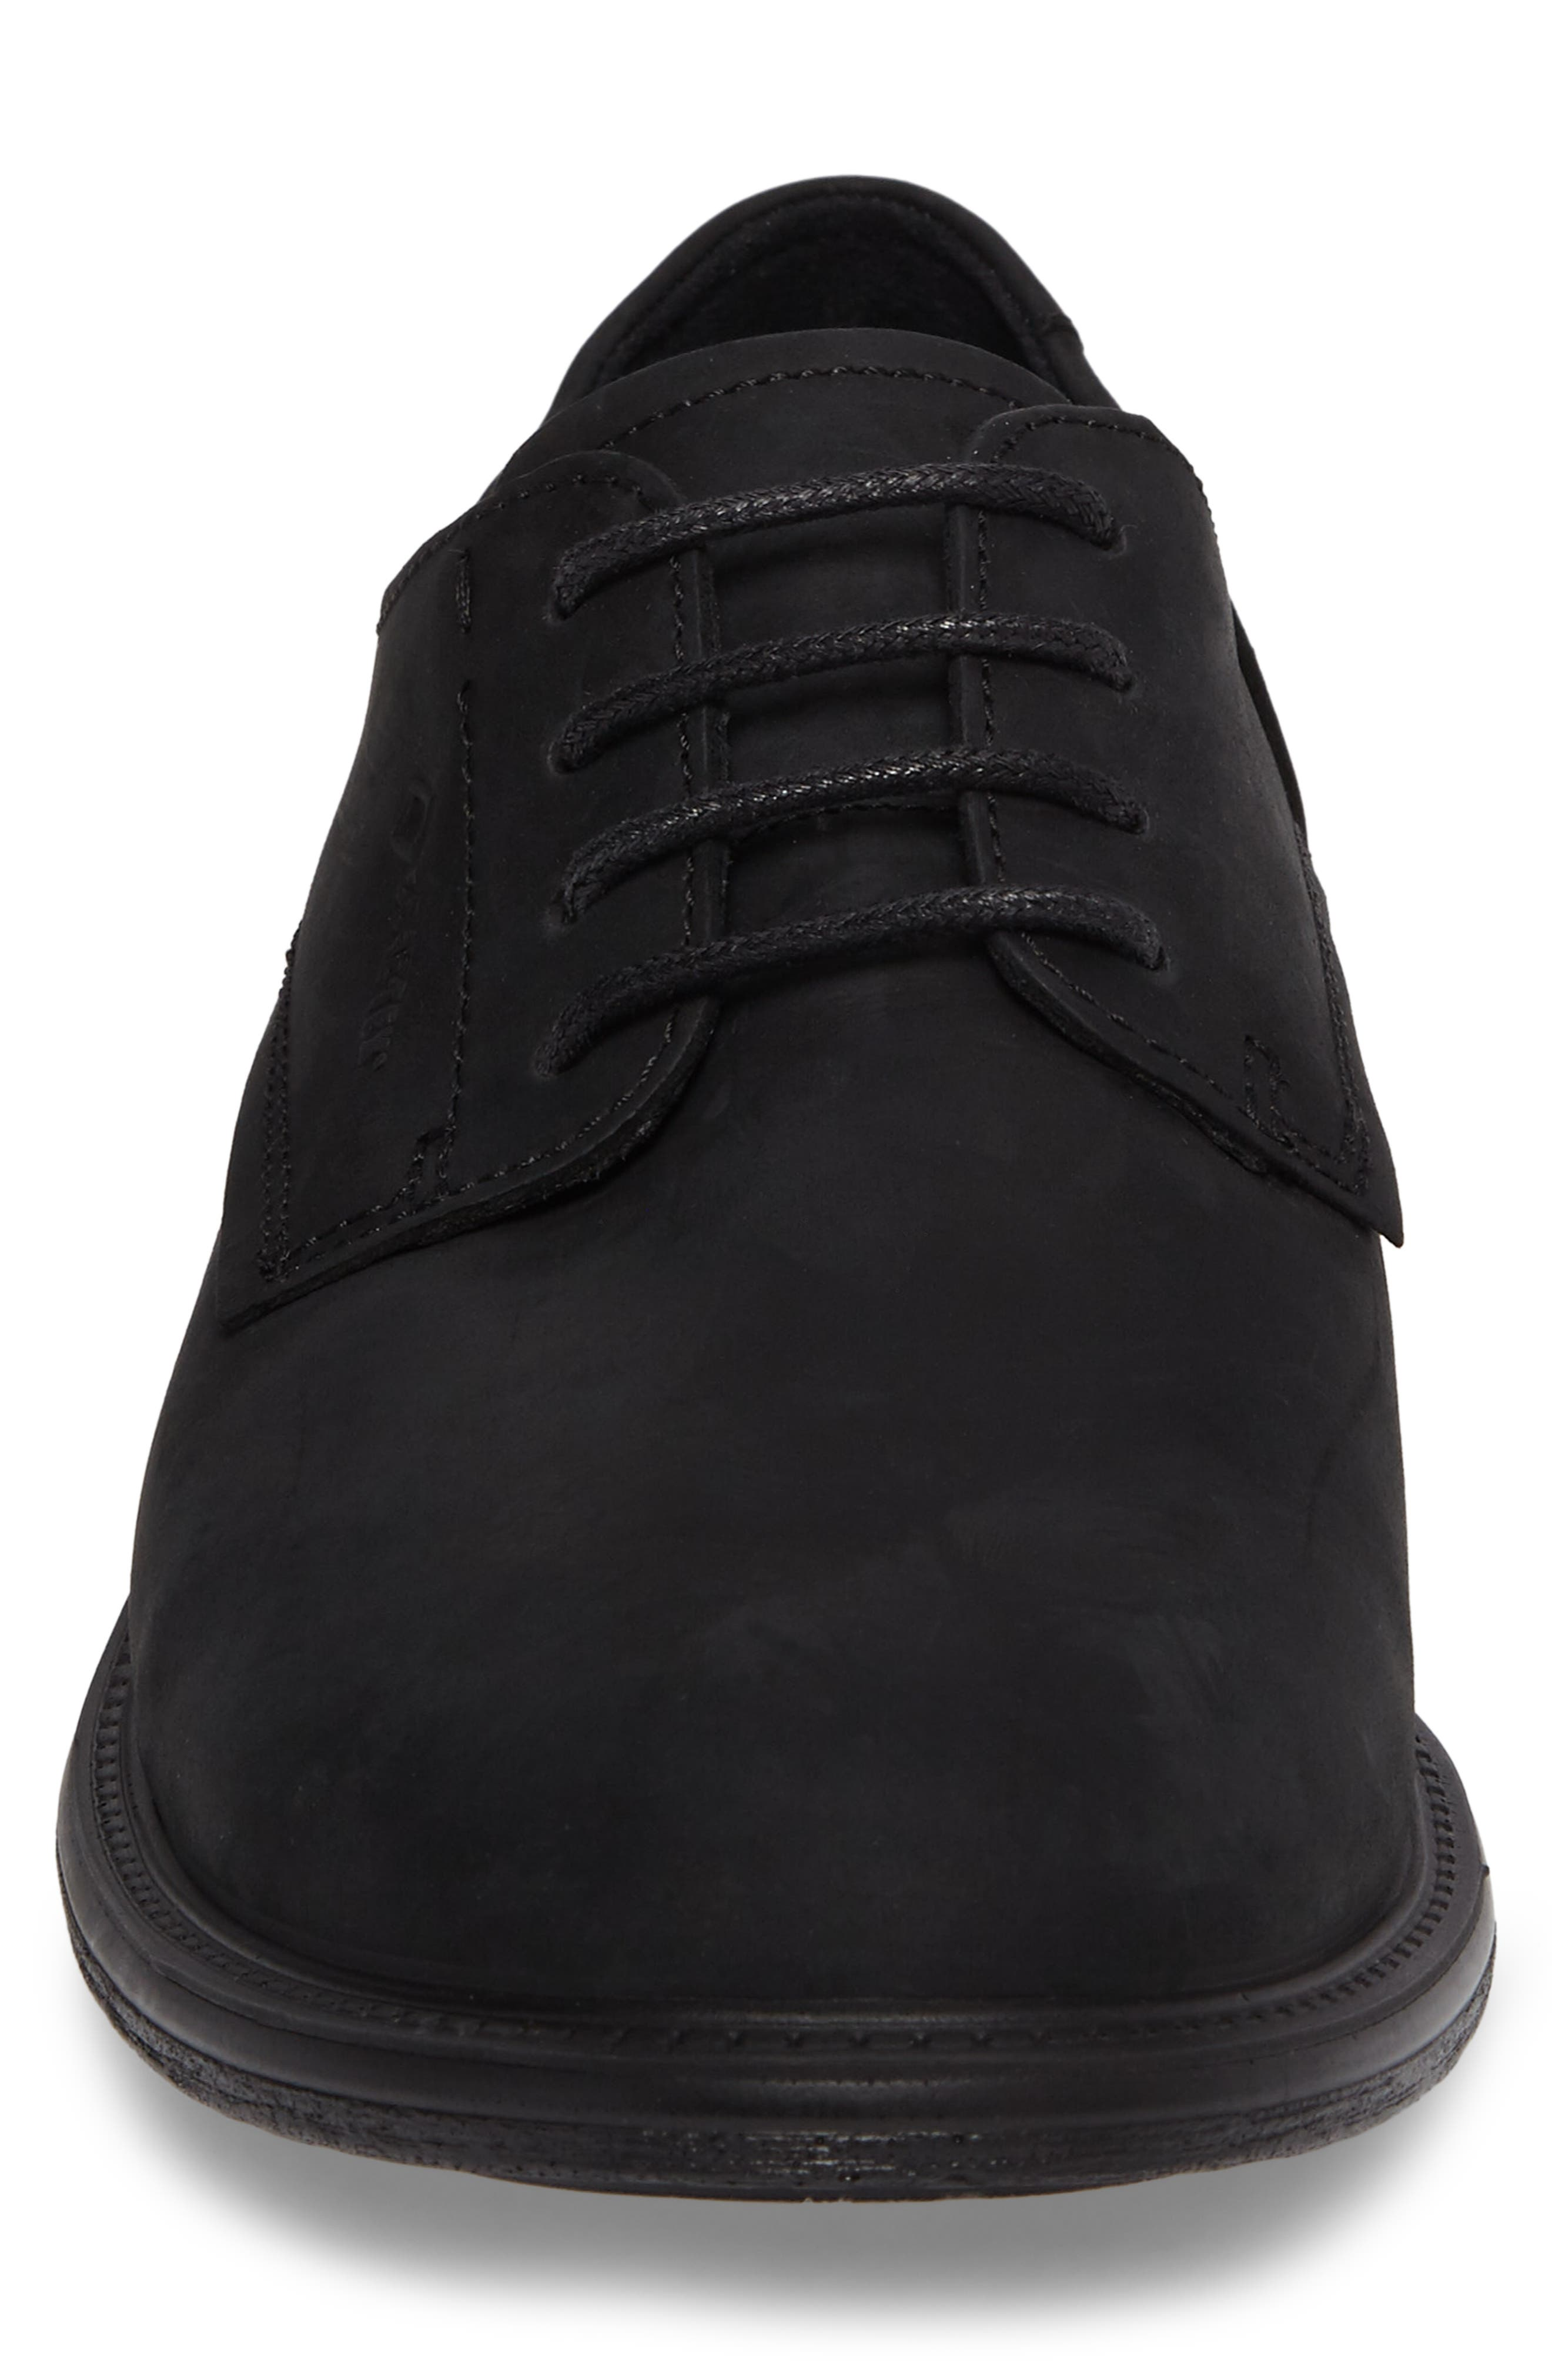 Knoxville Plain Toe Waterproof Gore-Tex<sup>®</sup> Derby,                             Alternate thumbnail 4, color,                             001